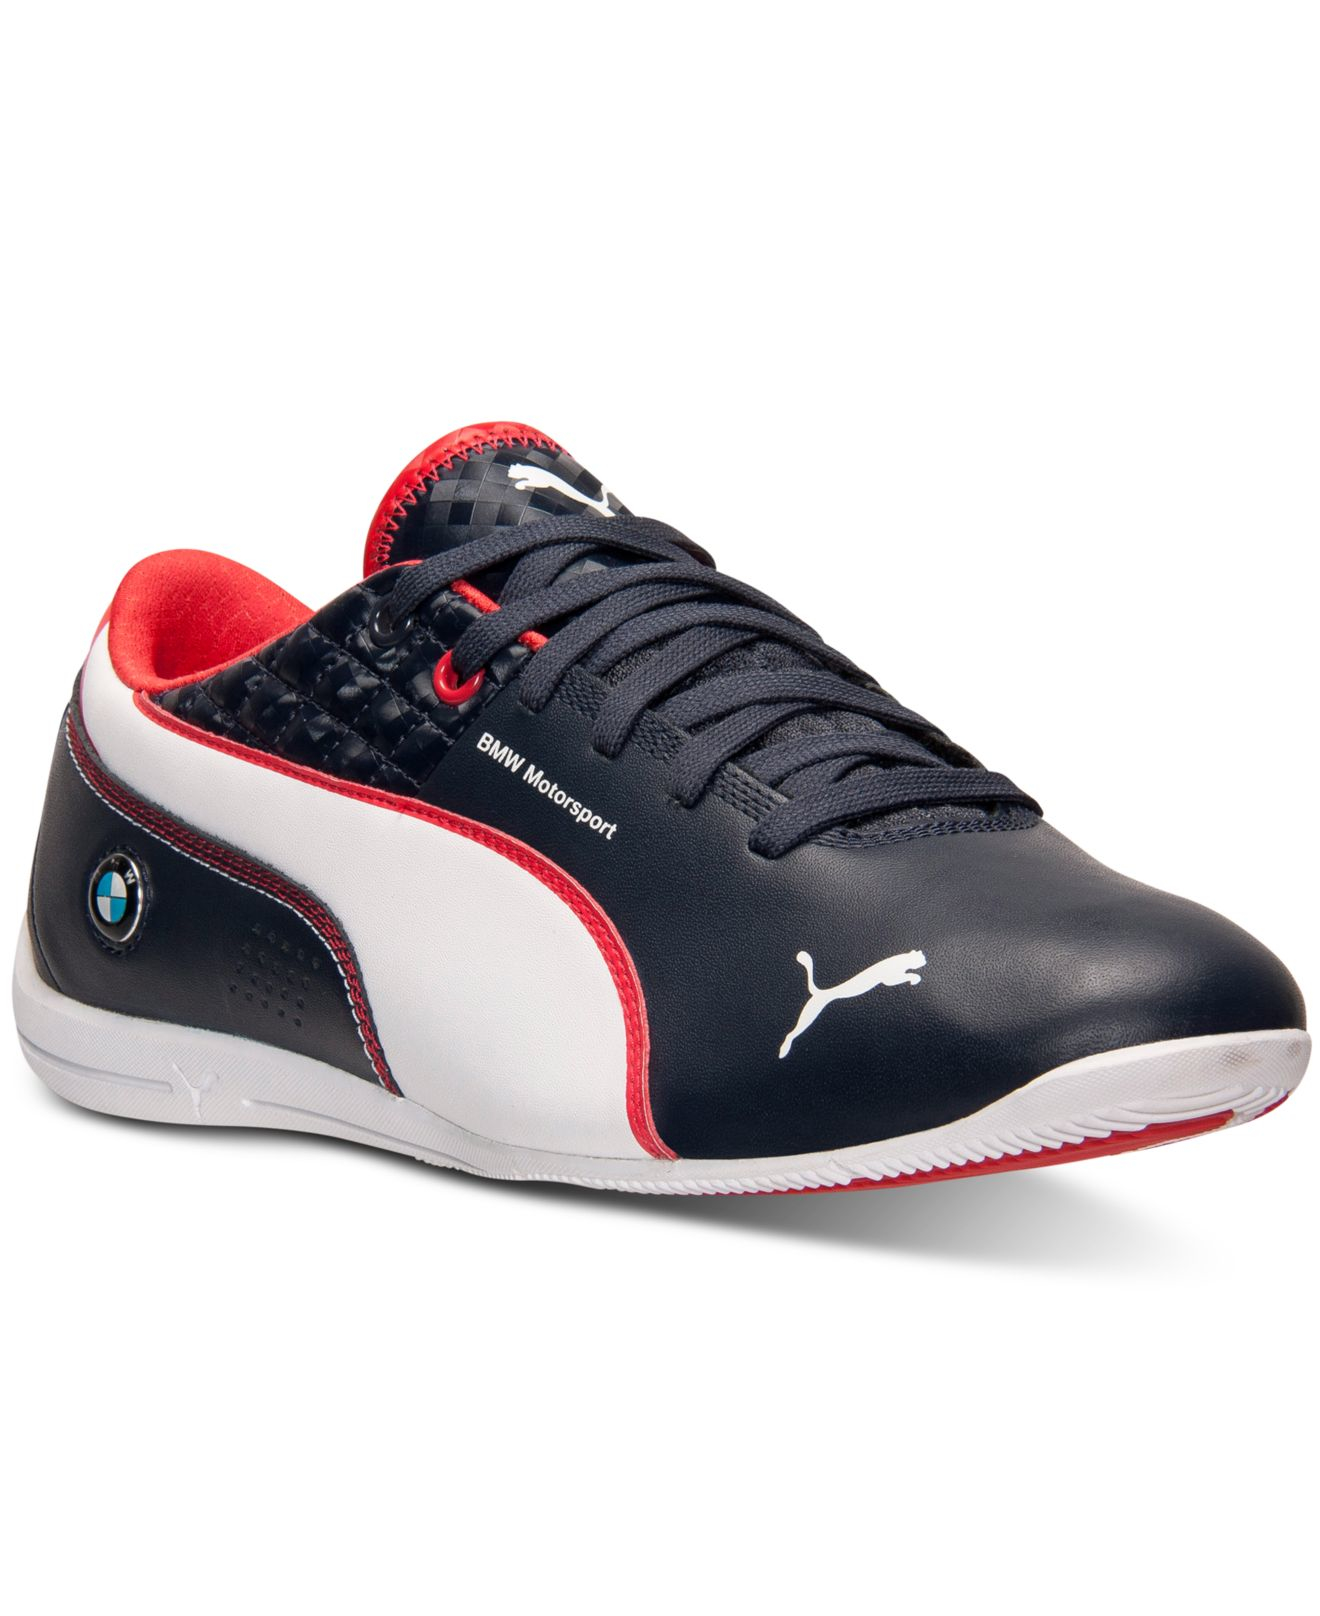 lyst puma men 39 s drift cat 6 bmw casual sneakers from. Black Bedroom Furniture Sets. Home Design Ideas